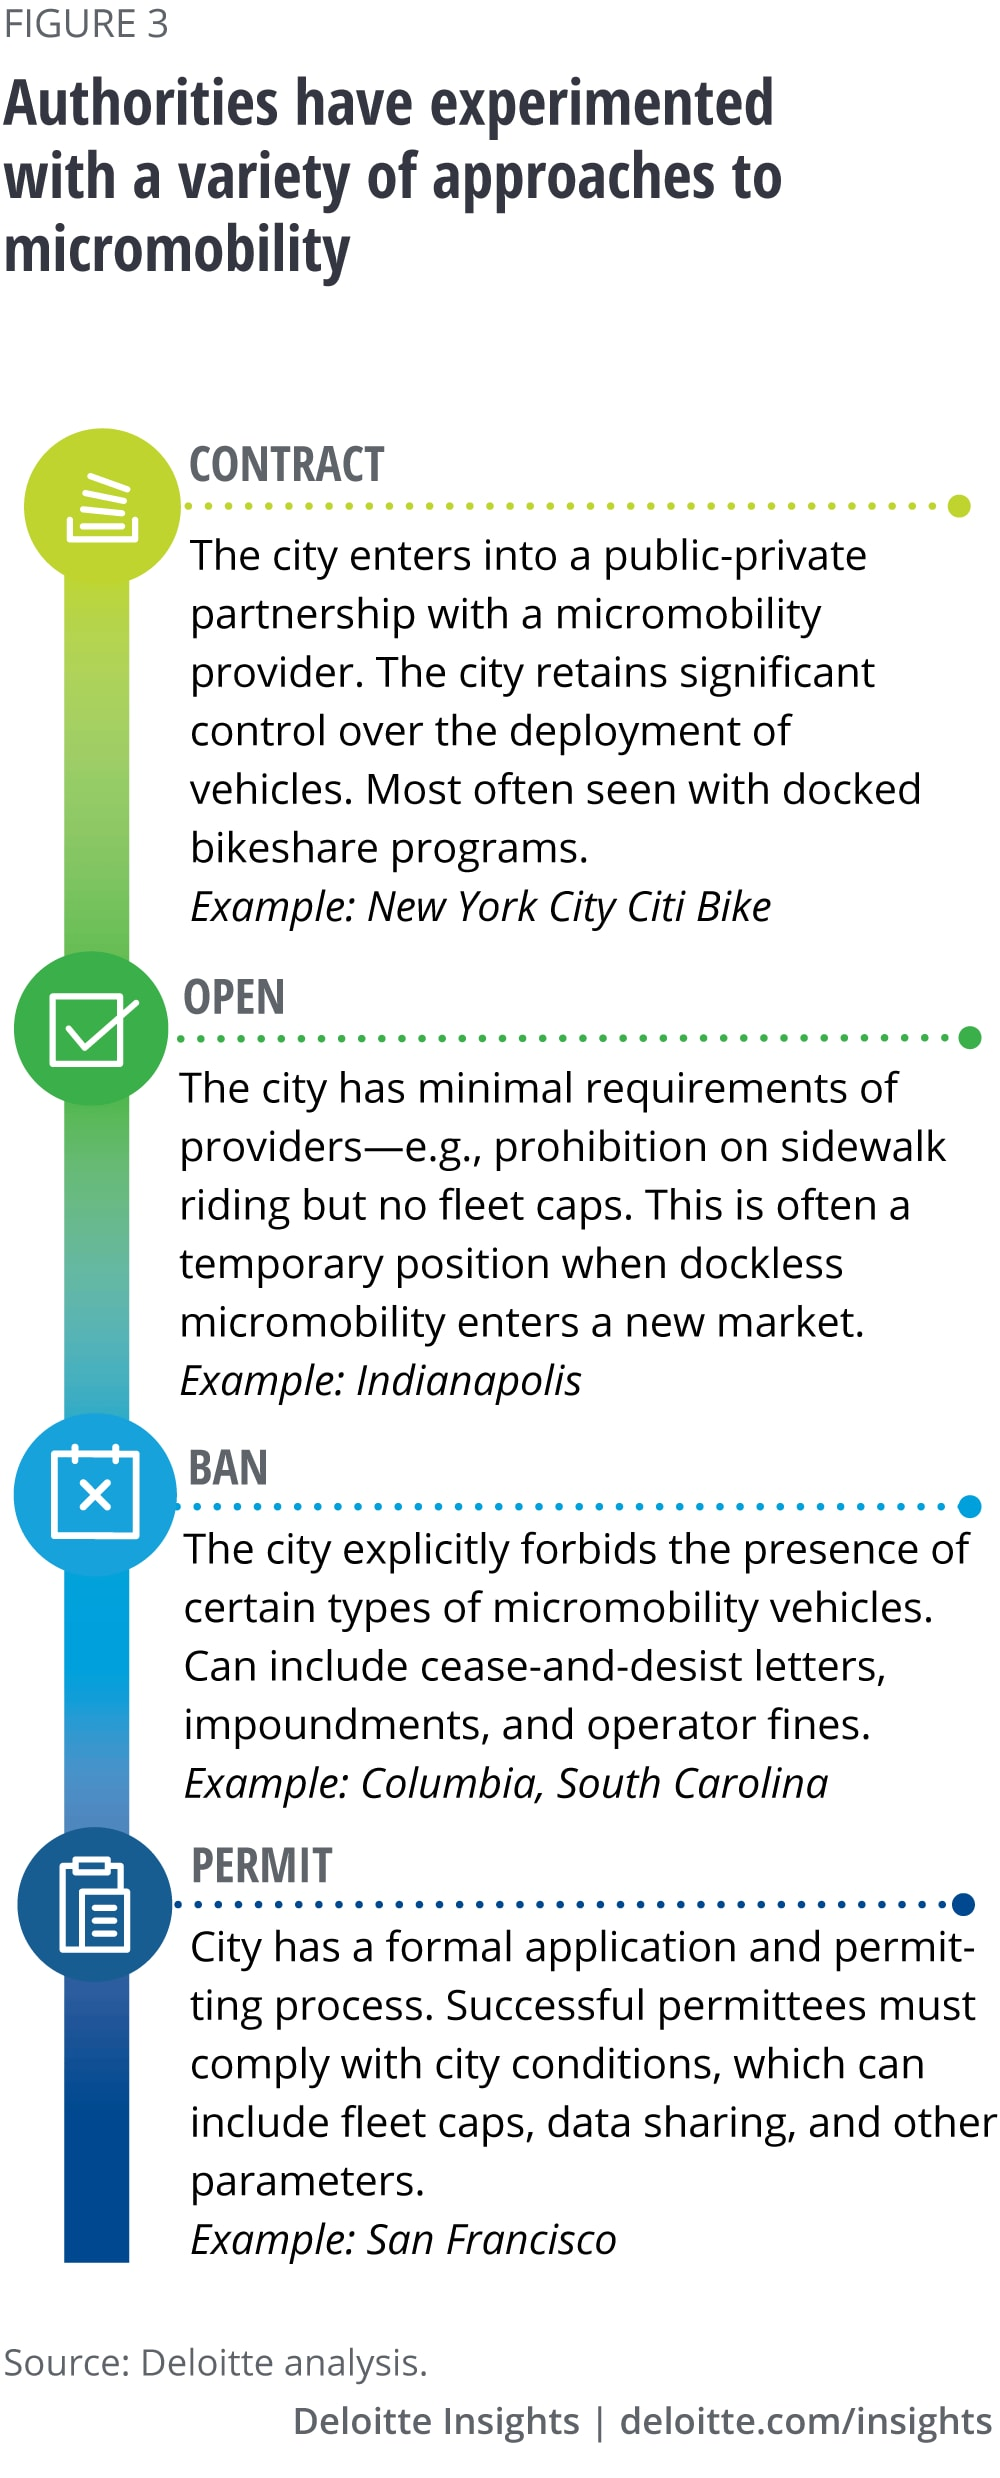 Authorities have experimented with a variety of approaches to micromobility